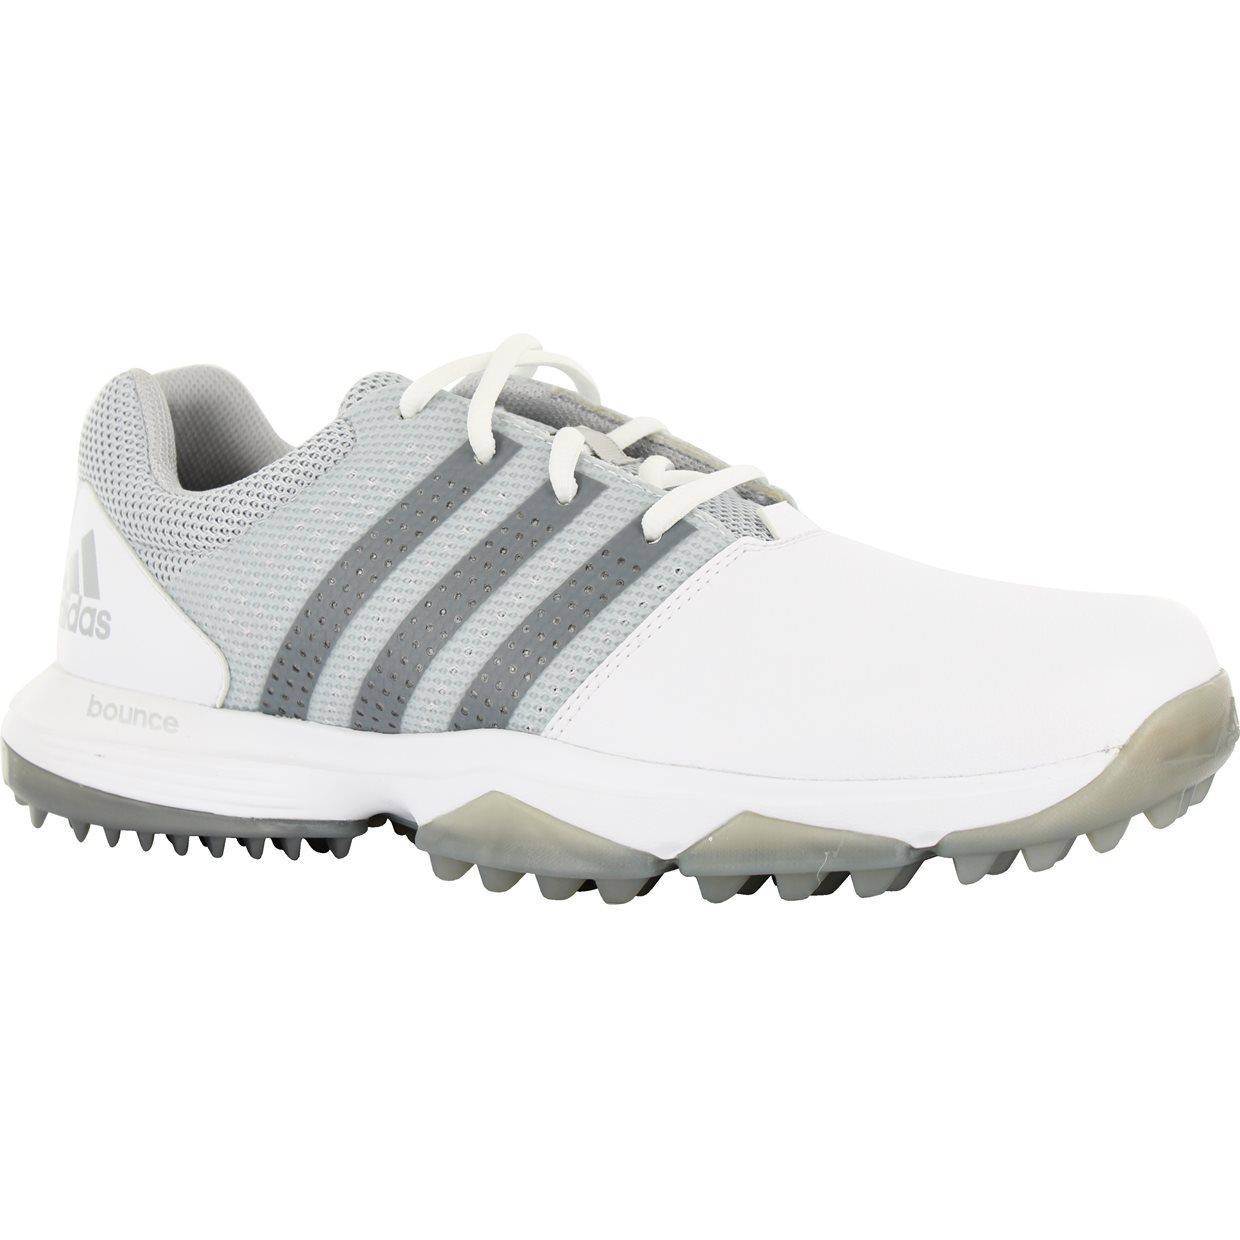 75a3e58d95c Adidas 360 Traxion Bounce Spikeless Shoes at GlobalGolf.com